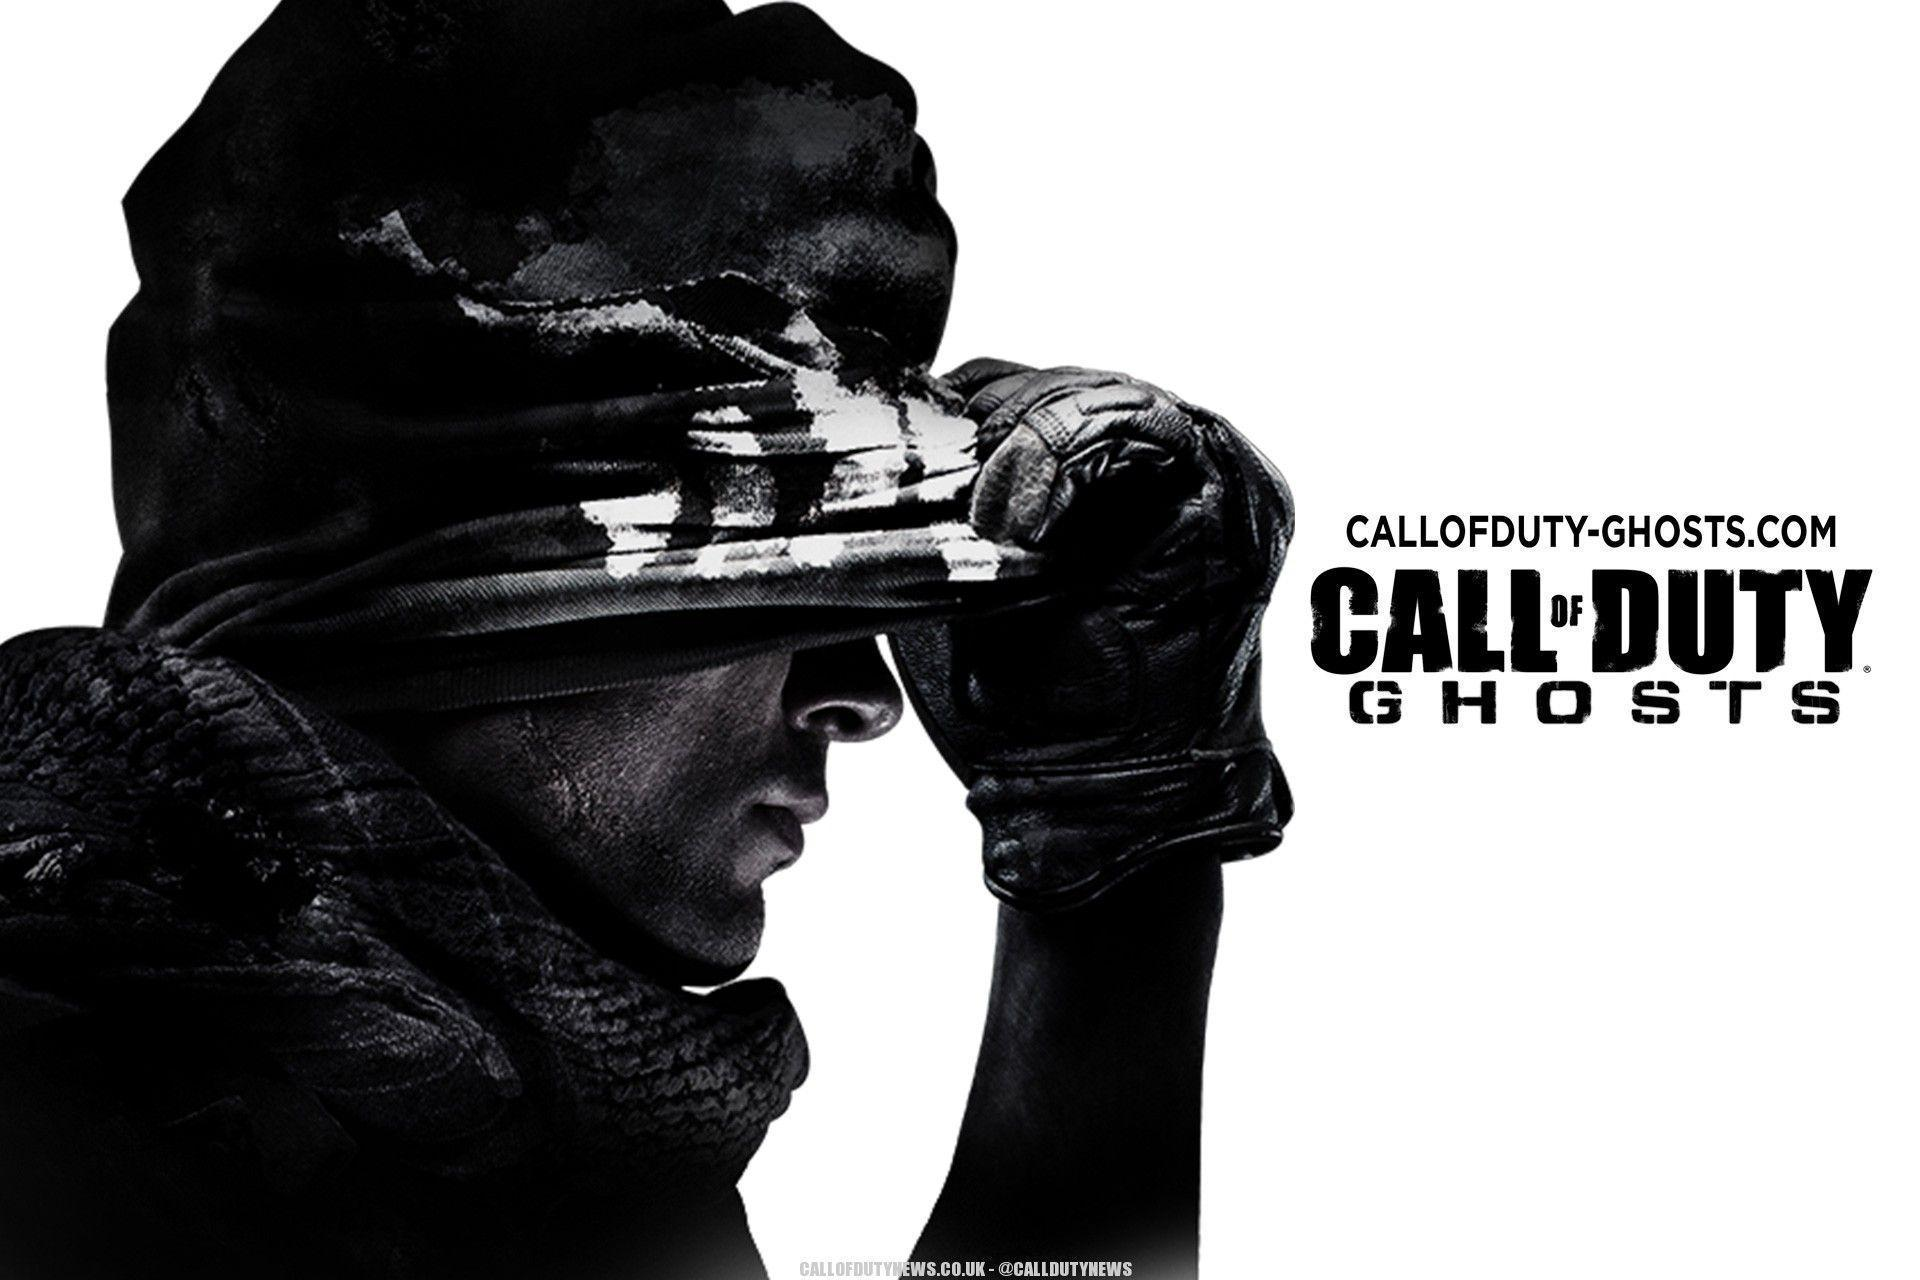 Call of Duty: Ghosts&PS4 and Xbox One multiplayer Gamescom reveal